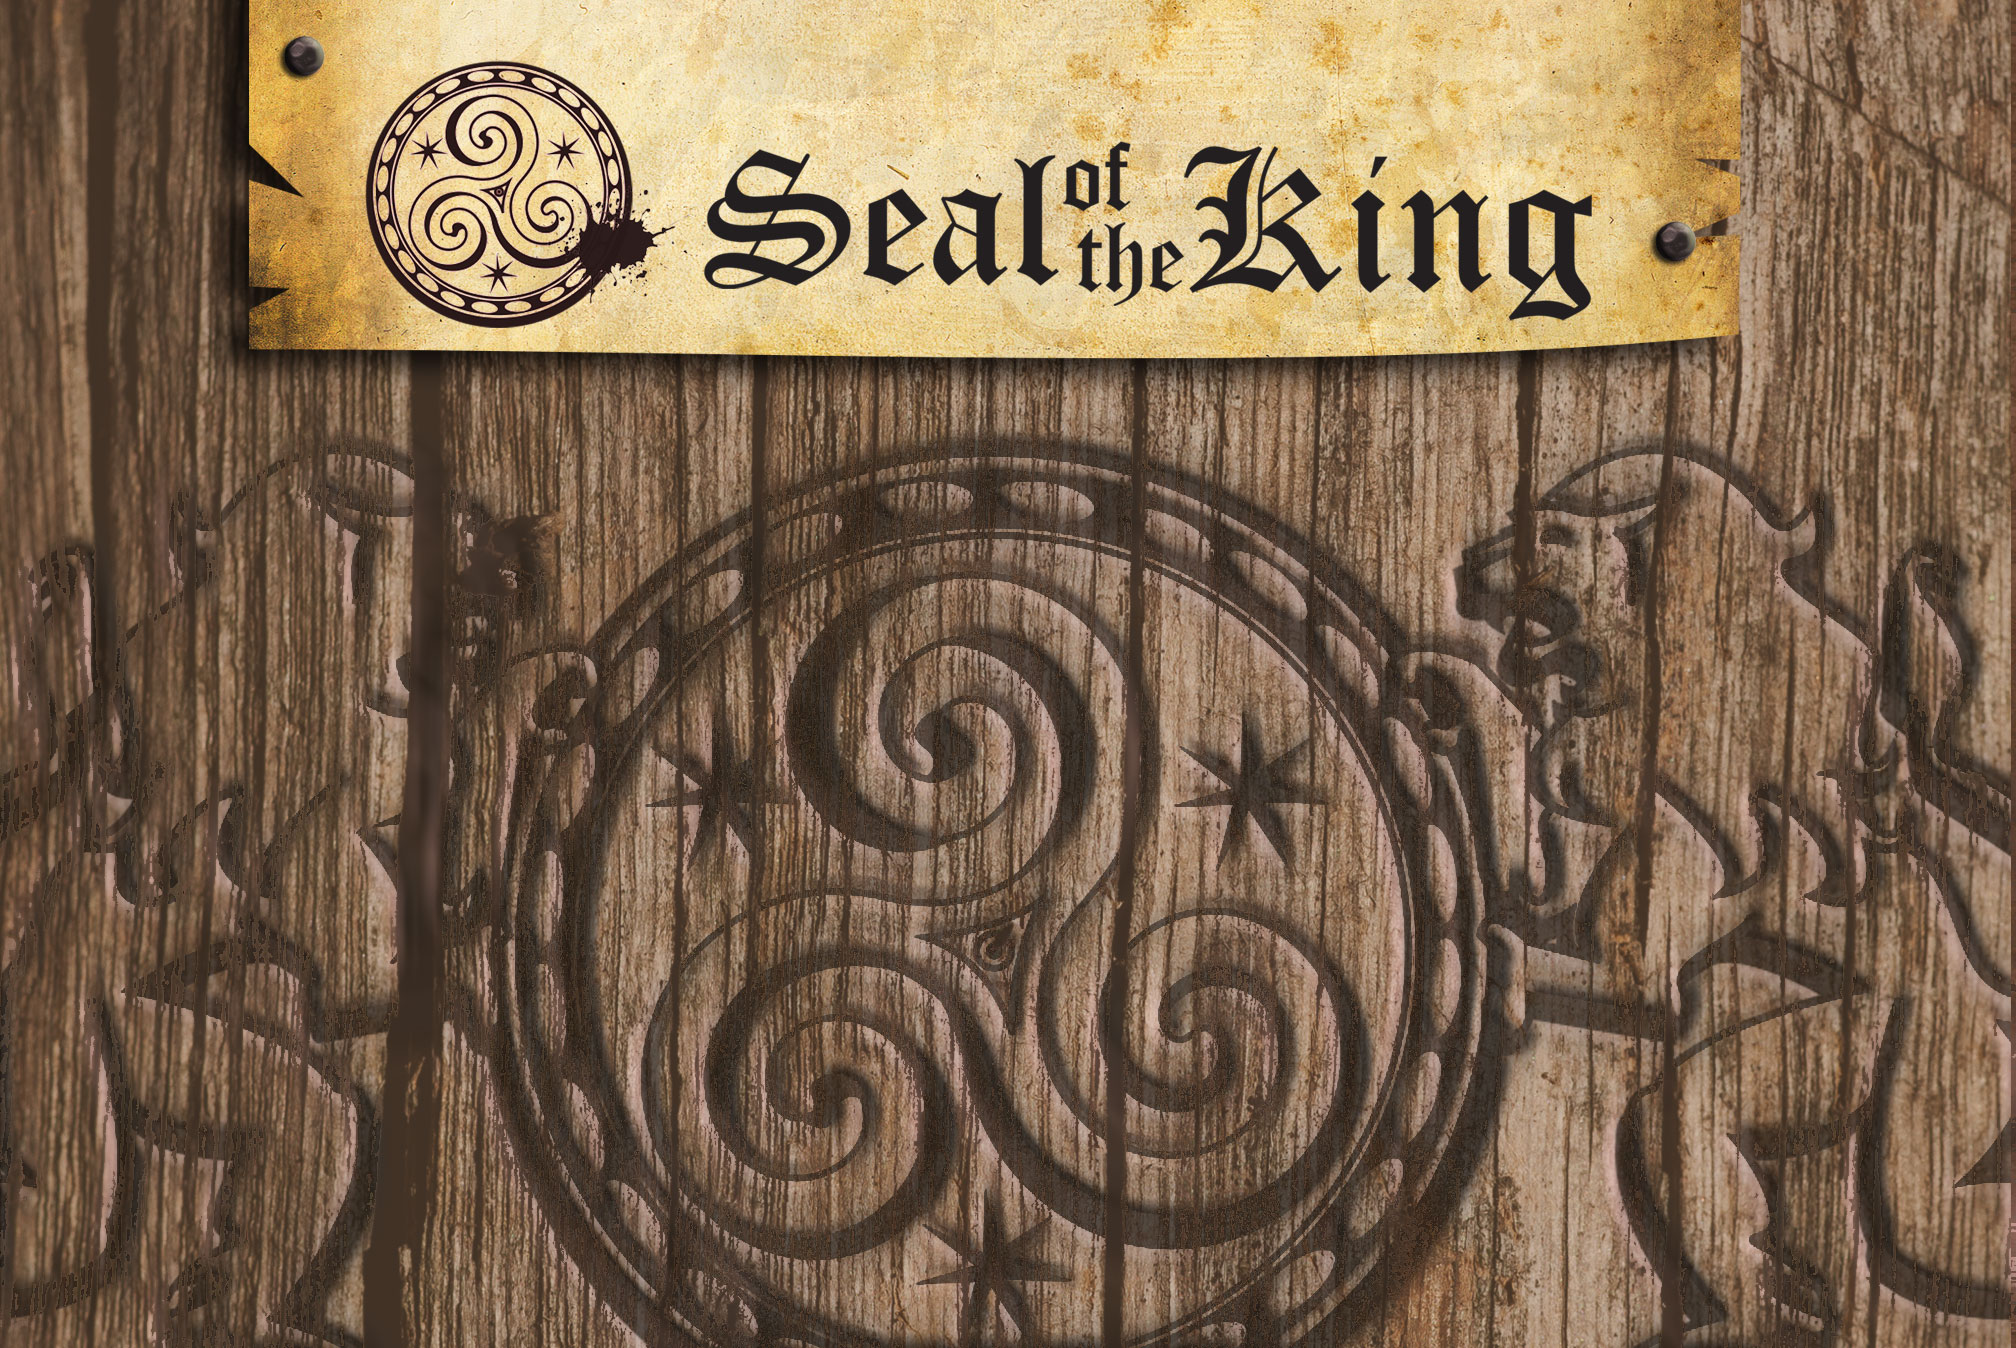 Amazon Reviews for Seal of the King